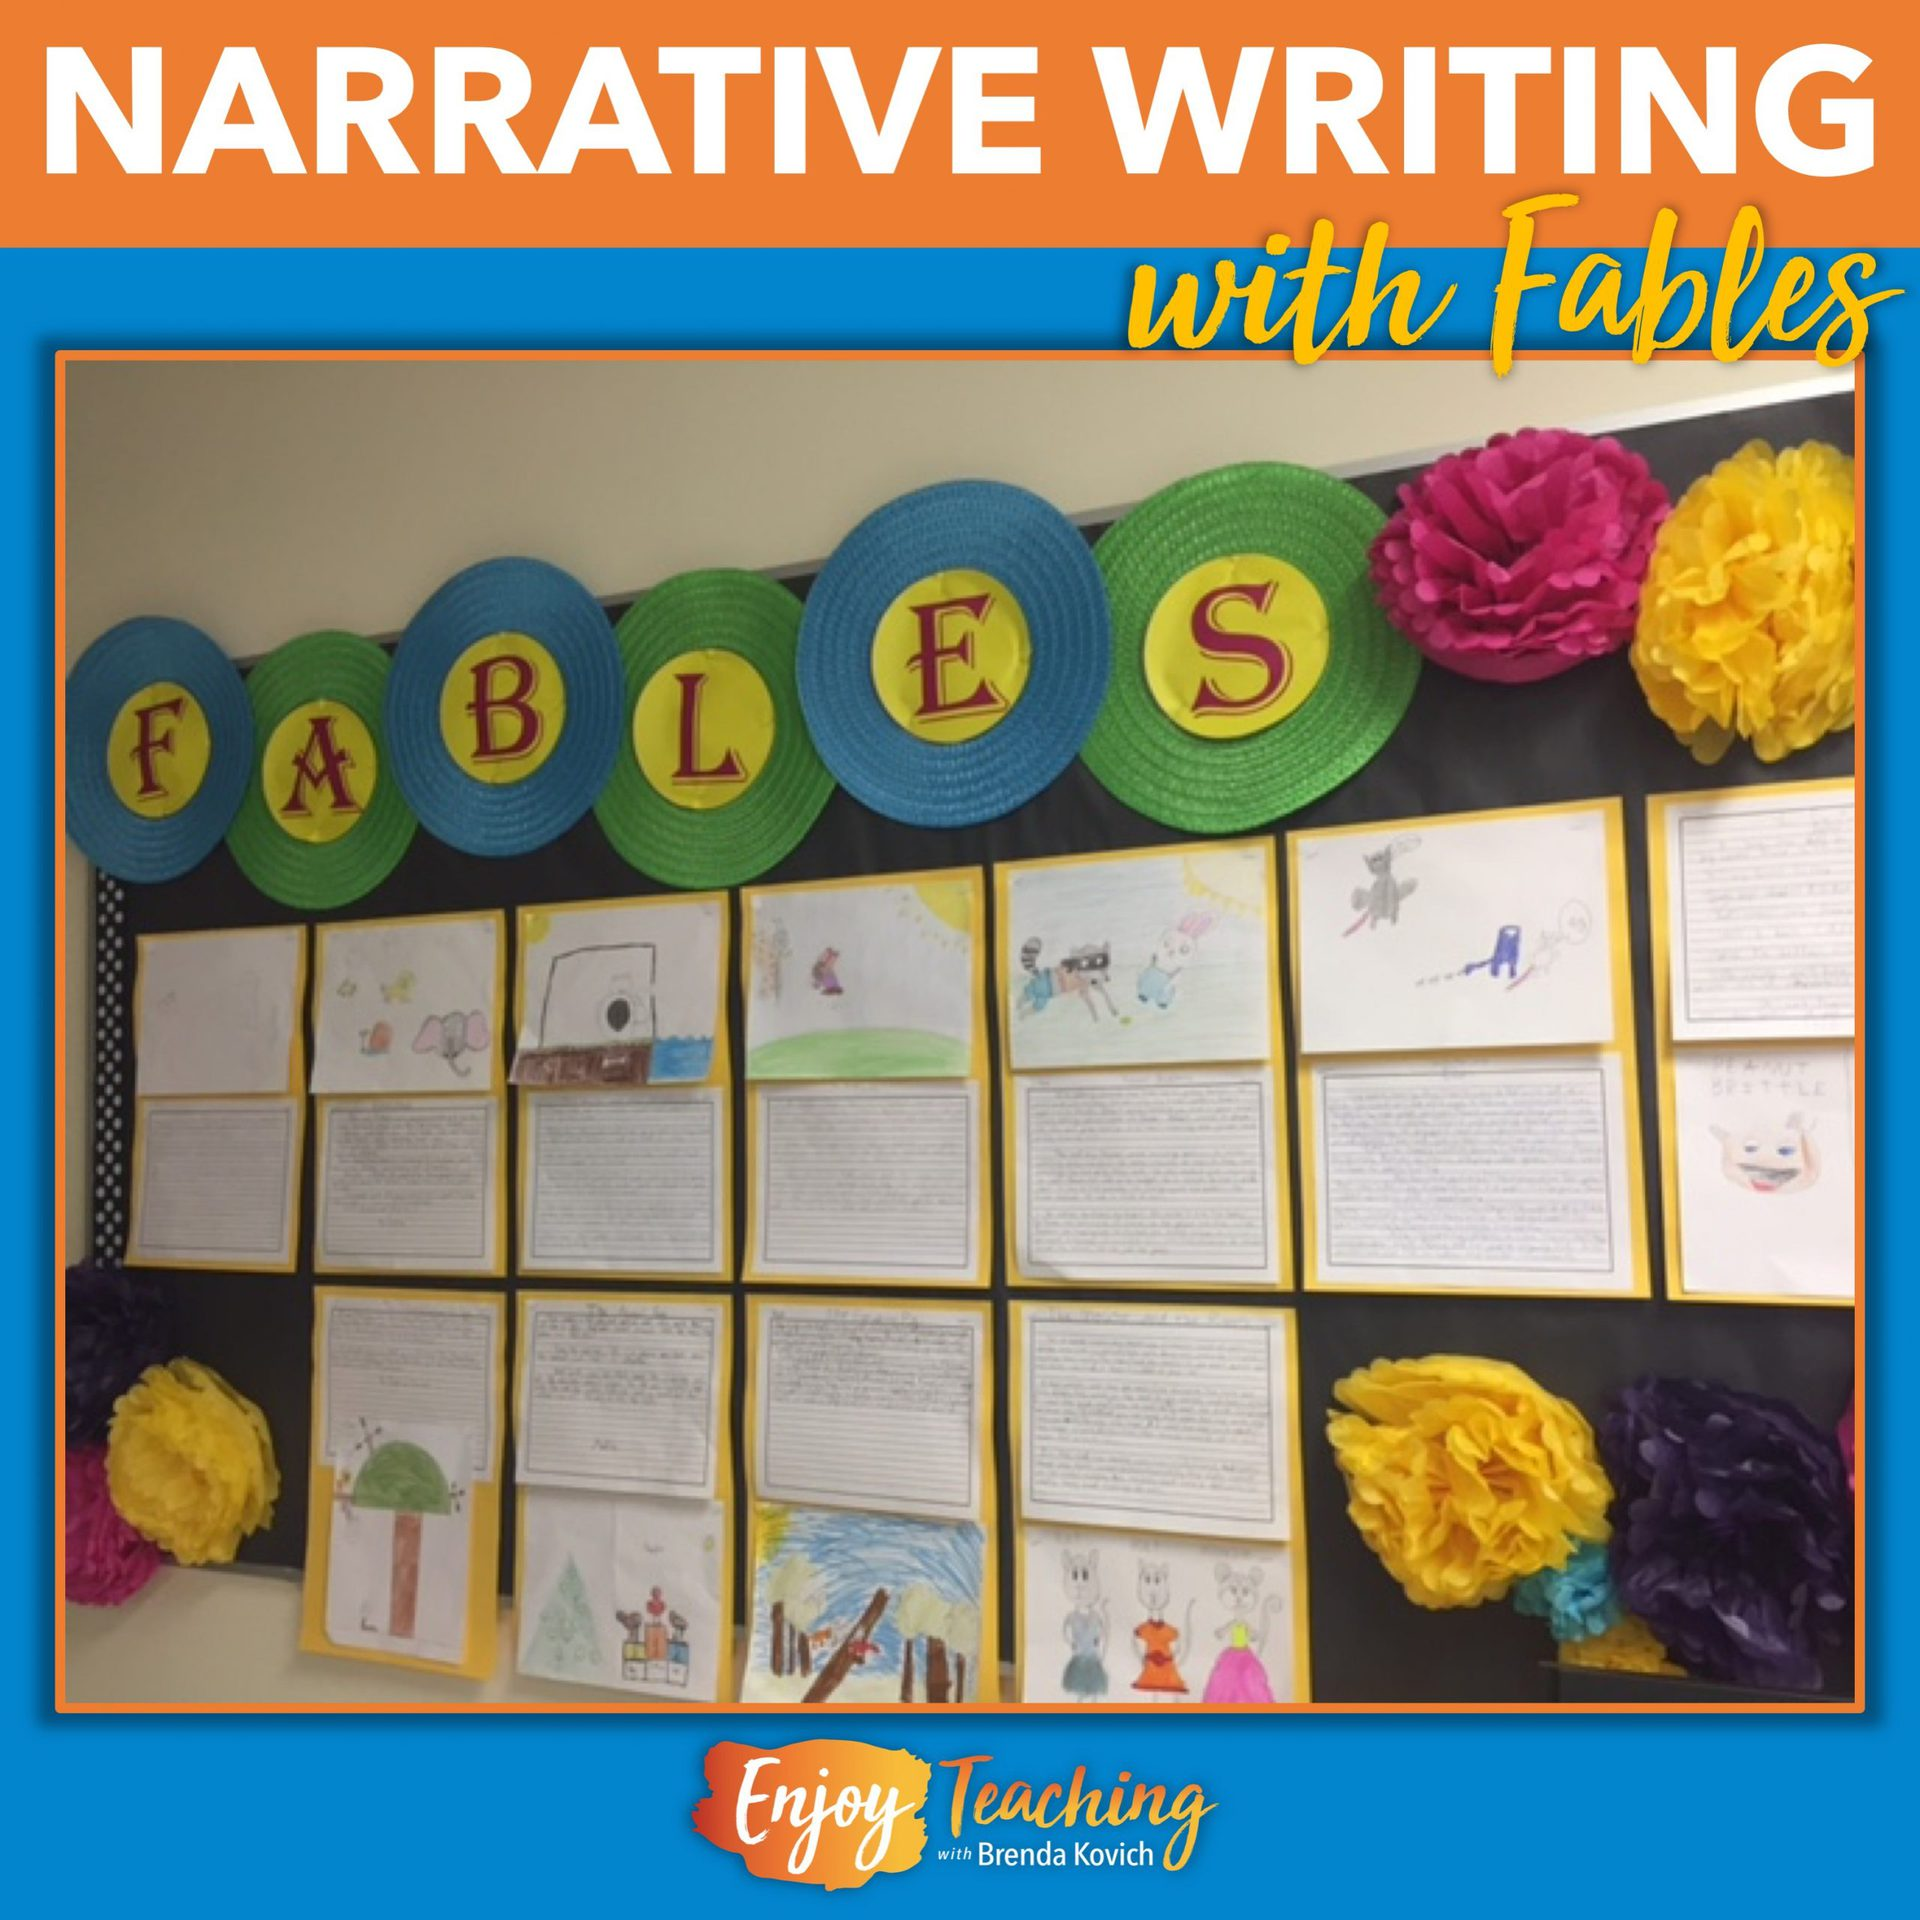 Fables First - Beginning Narrative Writing with Short, Simple Stories